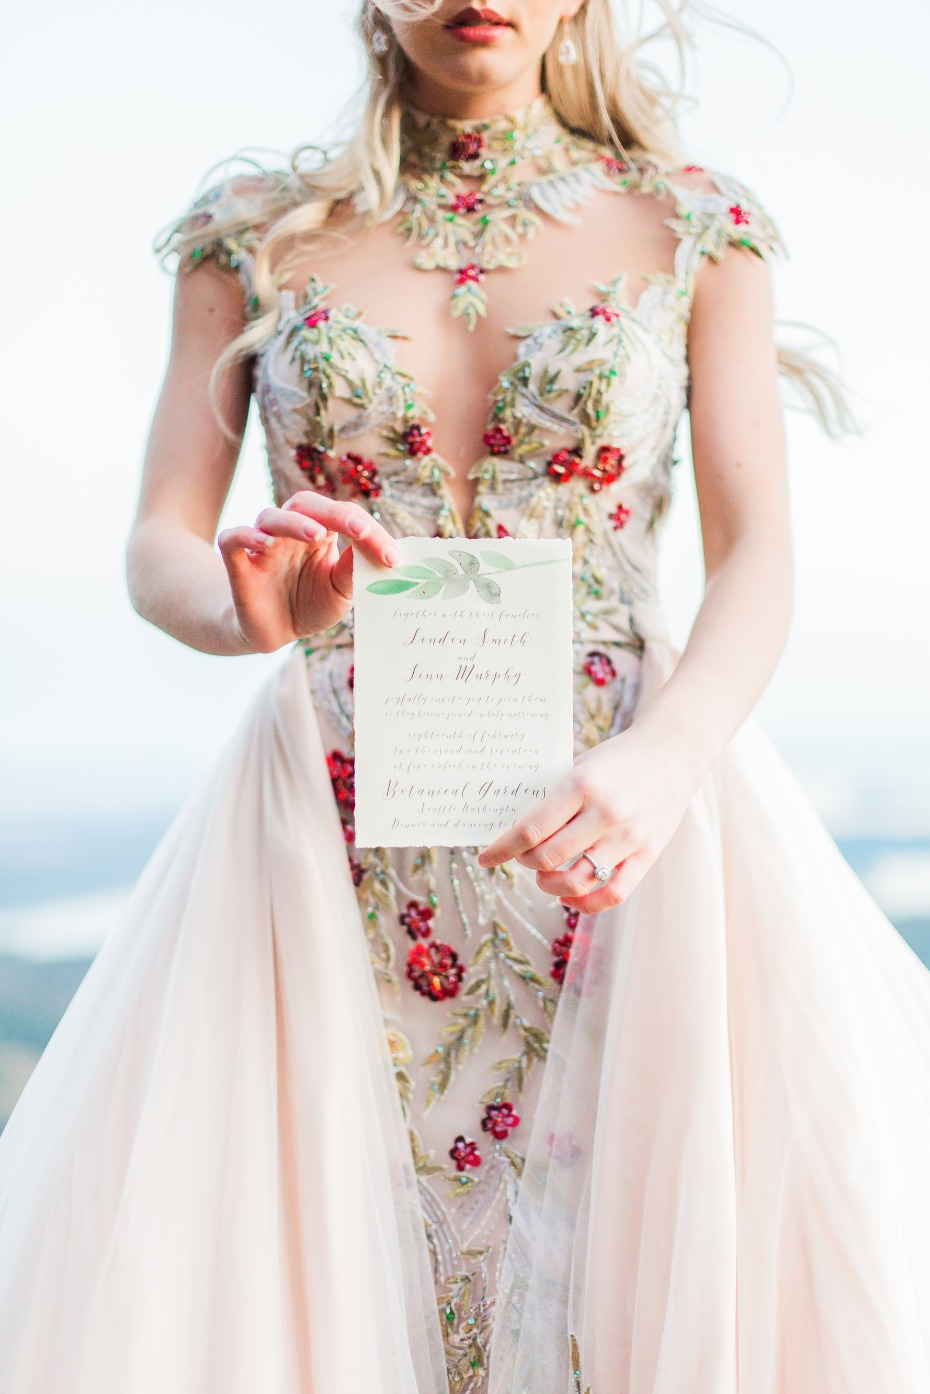 wedding invitation and insanely embroidered wedding gown